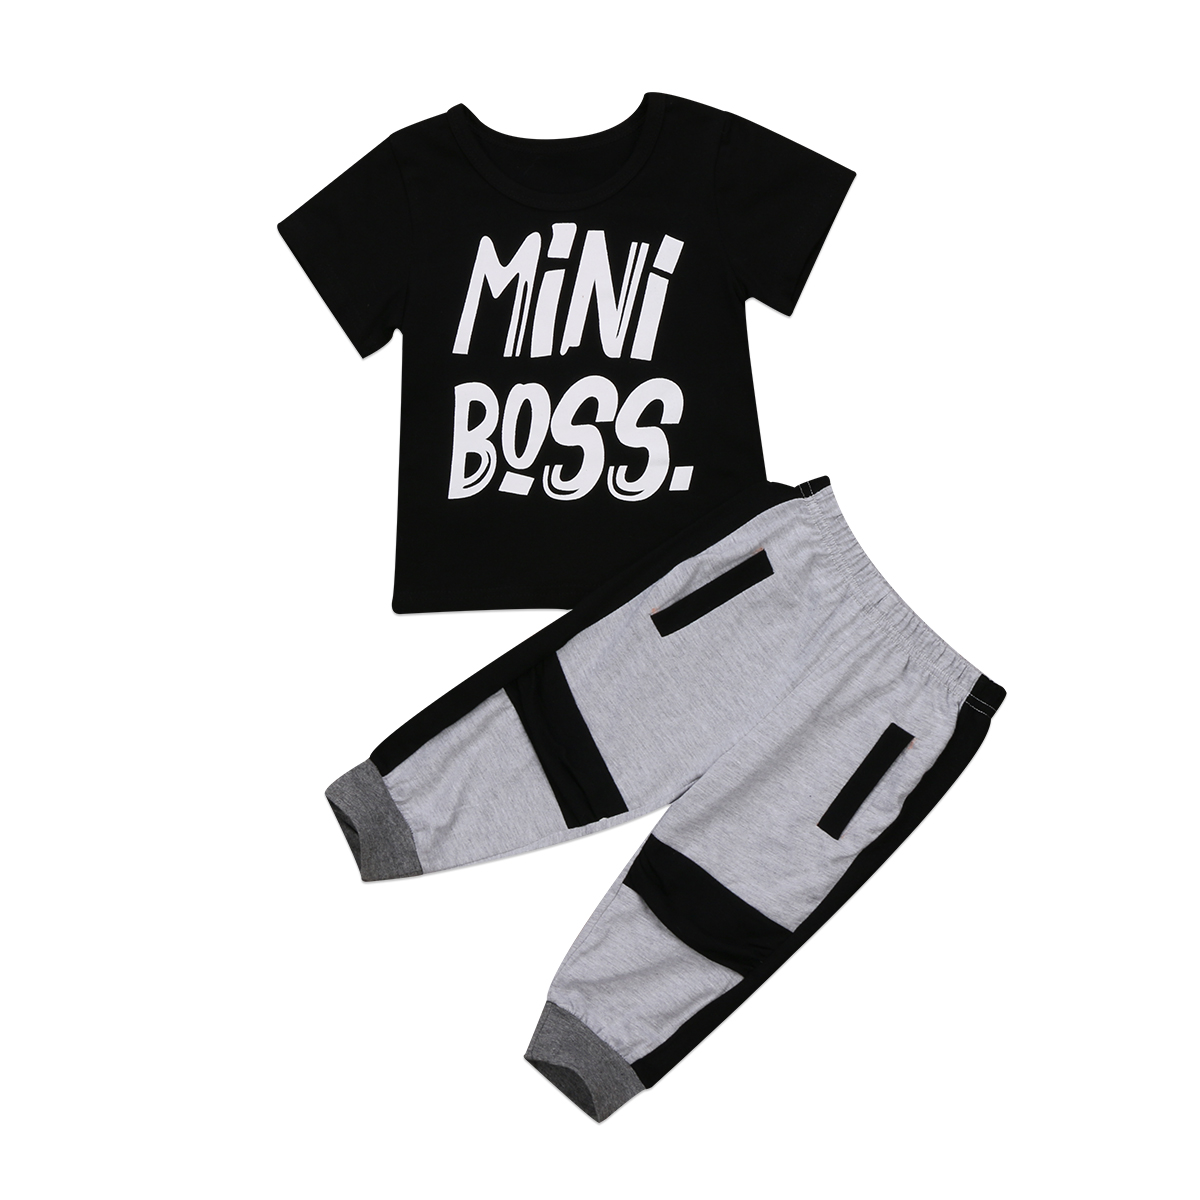 2Pcs Toddler Kids Baby Boy Clothes Sets T-shirt Tops Short Sleeve Pants Harem Outfits Set Cotton Clothing Baby Boys 1-6T 2pcs baby kids boys clothes set t shirt tops long sleeve outfits pants set cotton casual cute autumn clothing baby boy